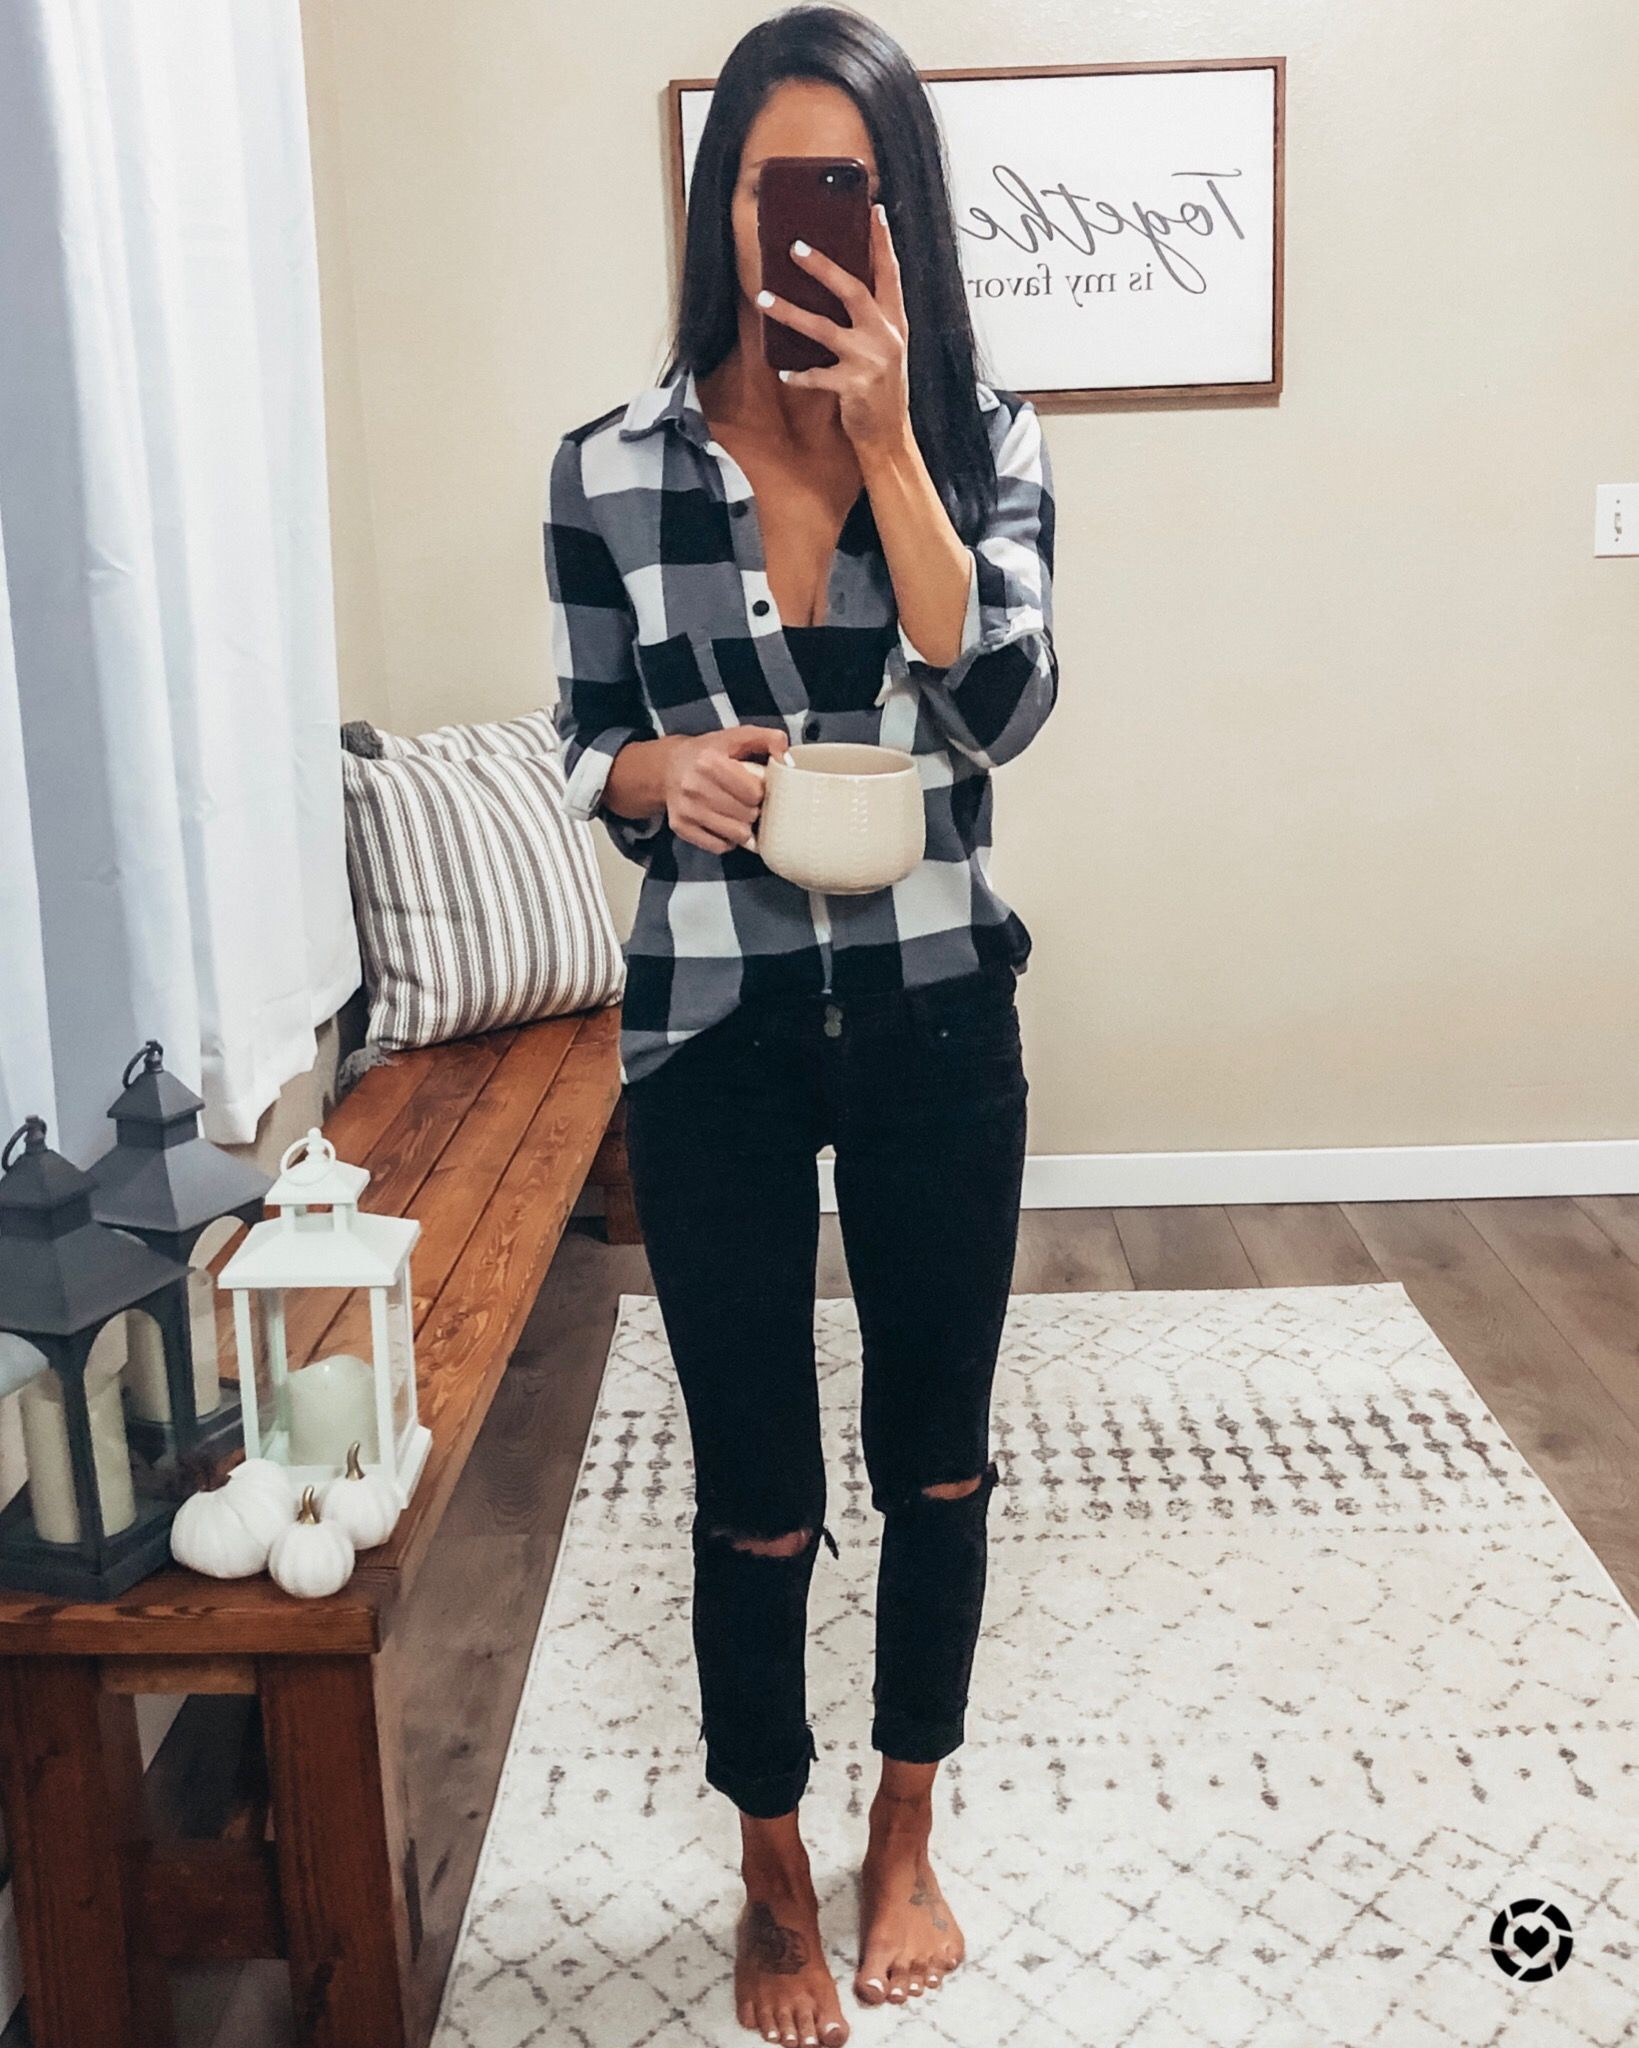 Chelledoeswhat Black Skinny Distressed Jeans Plaid Shirt Flannel Shirt White Gel Nail Polish Fa Leggings Outfit Fall Plaid Shirt Outfits Outfits With Leggings [ 2048 x 1639 Pixel ]